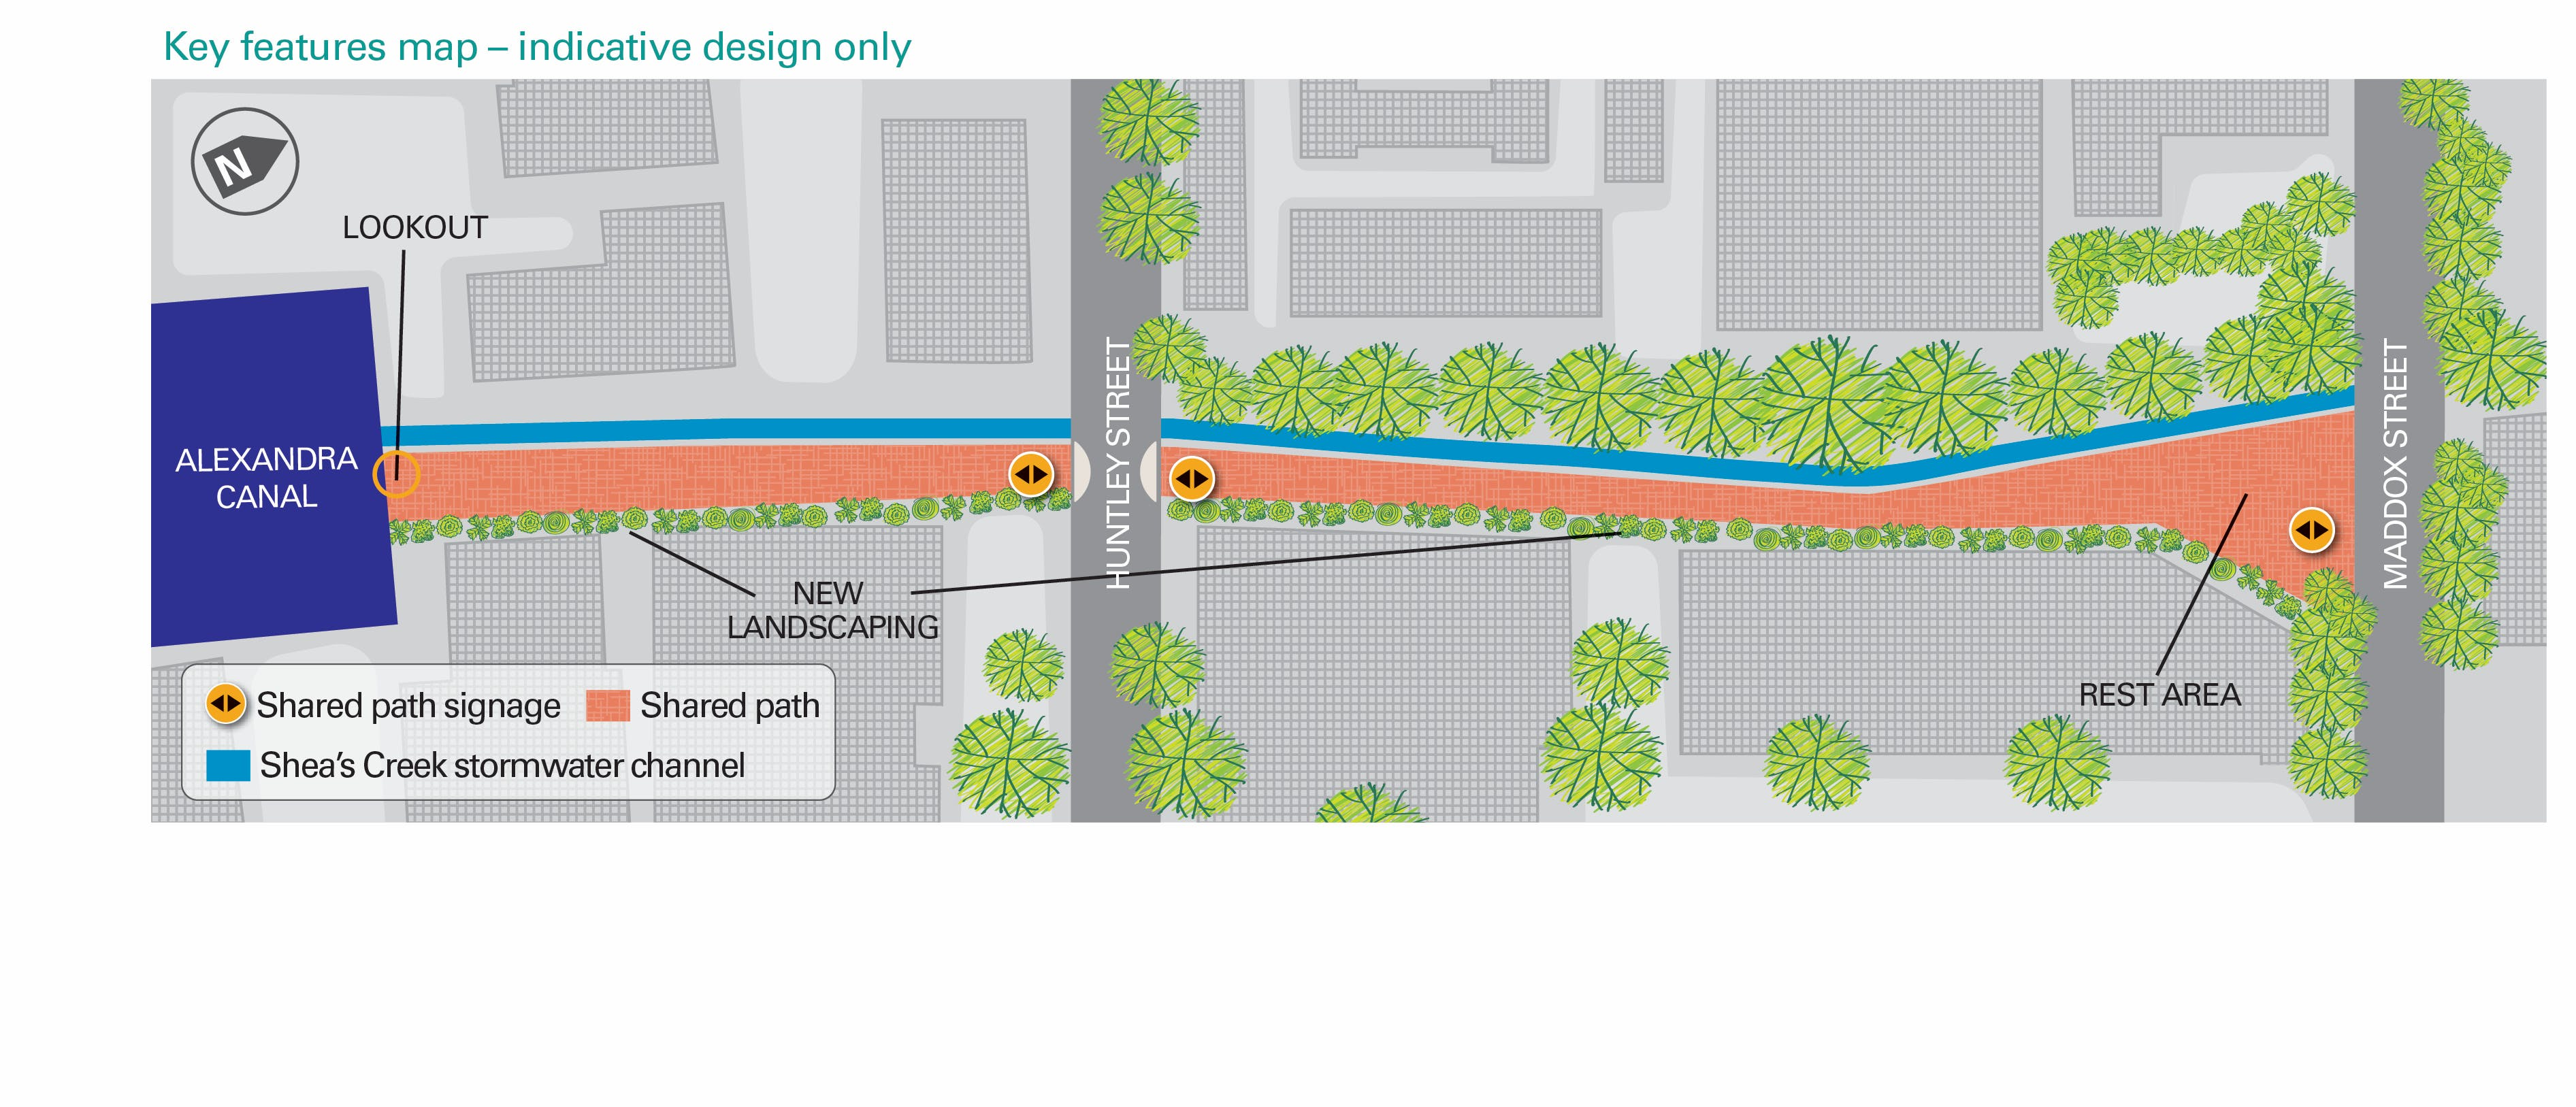 Maddox Street to Alexandra Canal shared path (indicative design only)